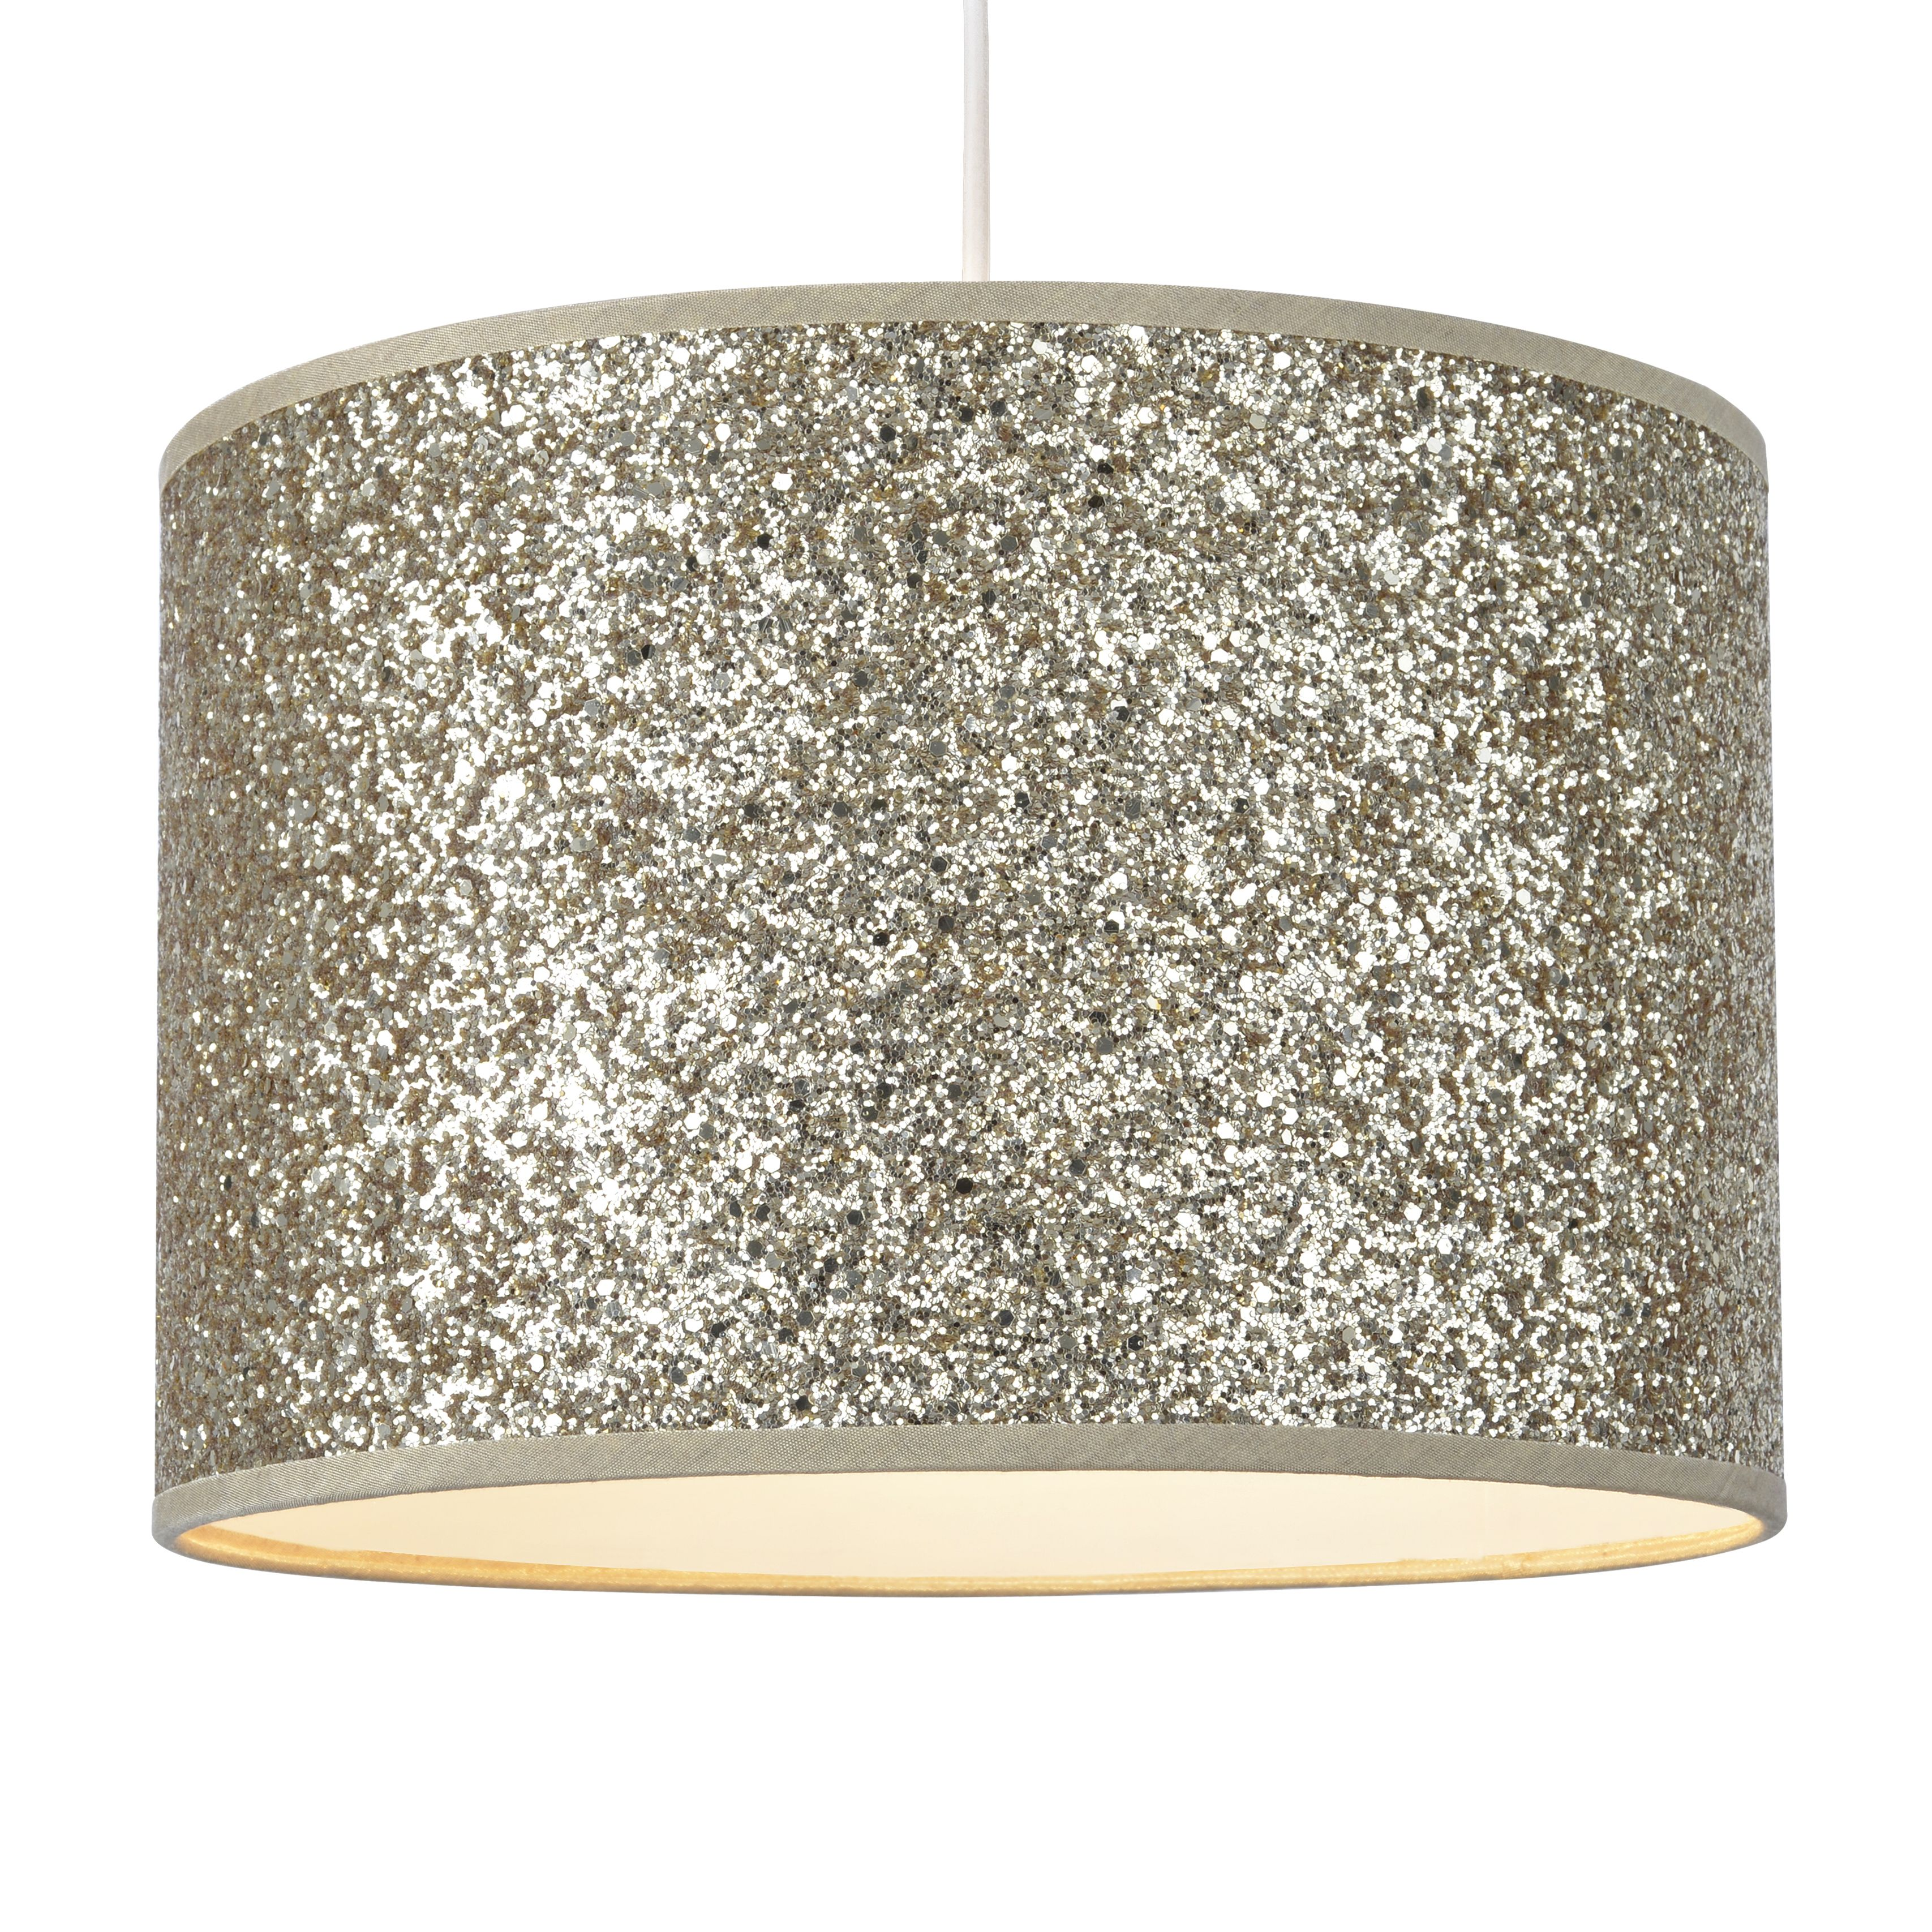 colours cirocha gold glitter lamp shade d 28cm. Black Bedroom Furniture Sets. Home Design Ideas